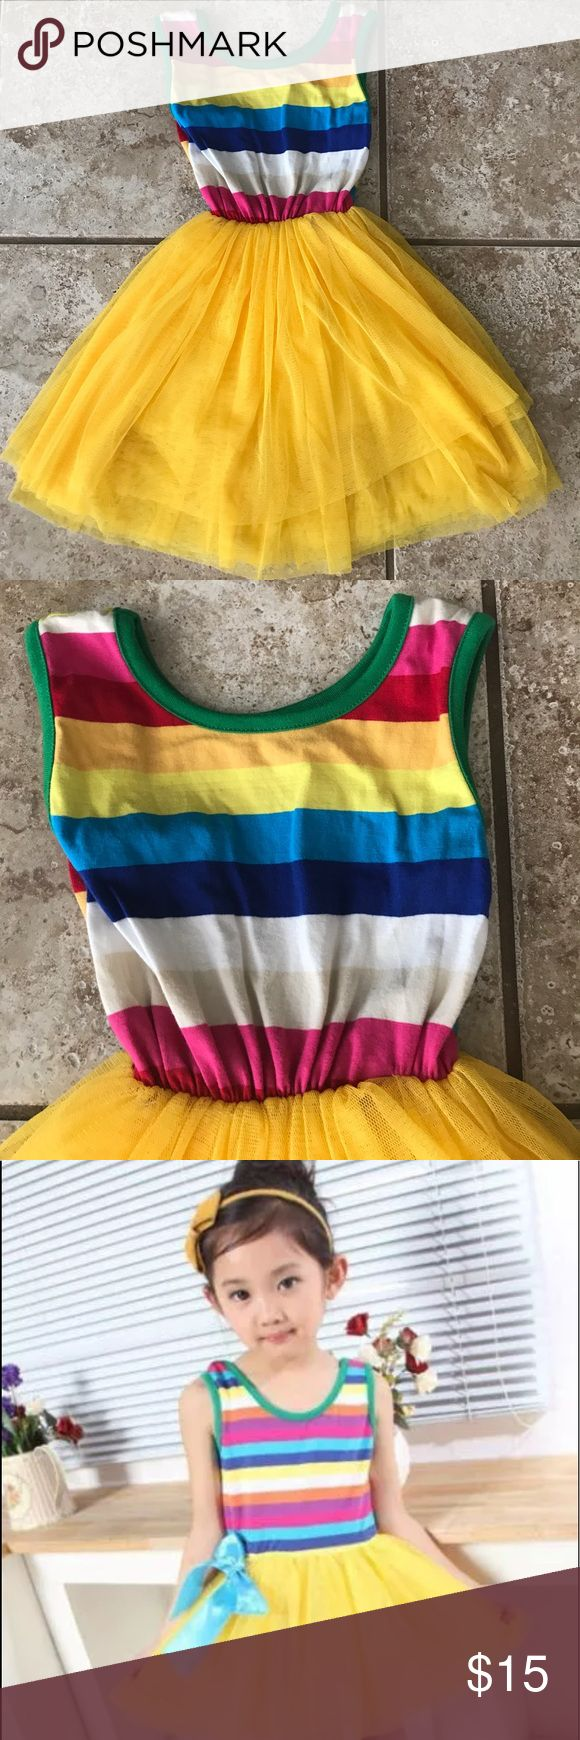 Pretty yellow tutu and striped top dress 👗 Adorable tutu dress 👗 like new condition. 3T Dresses Casual